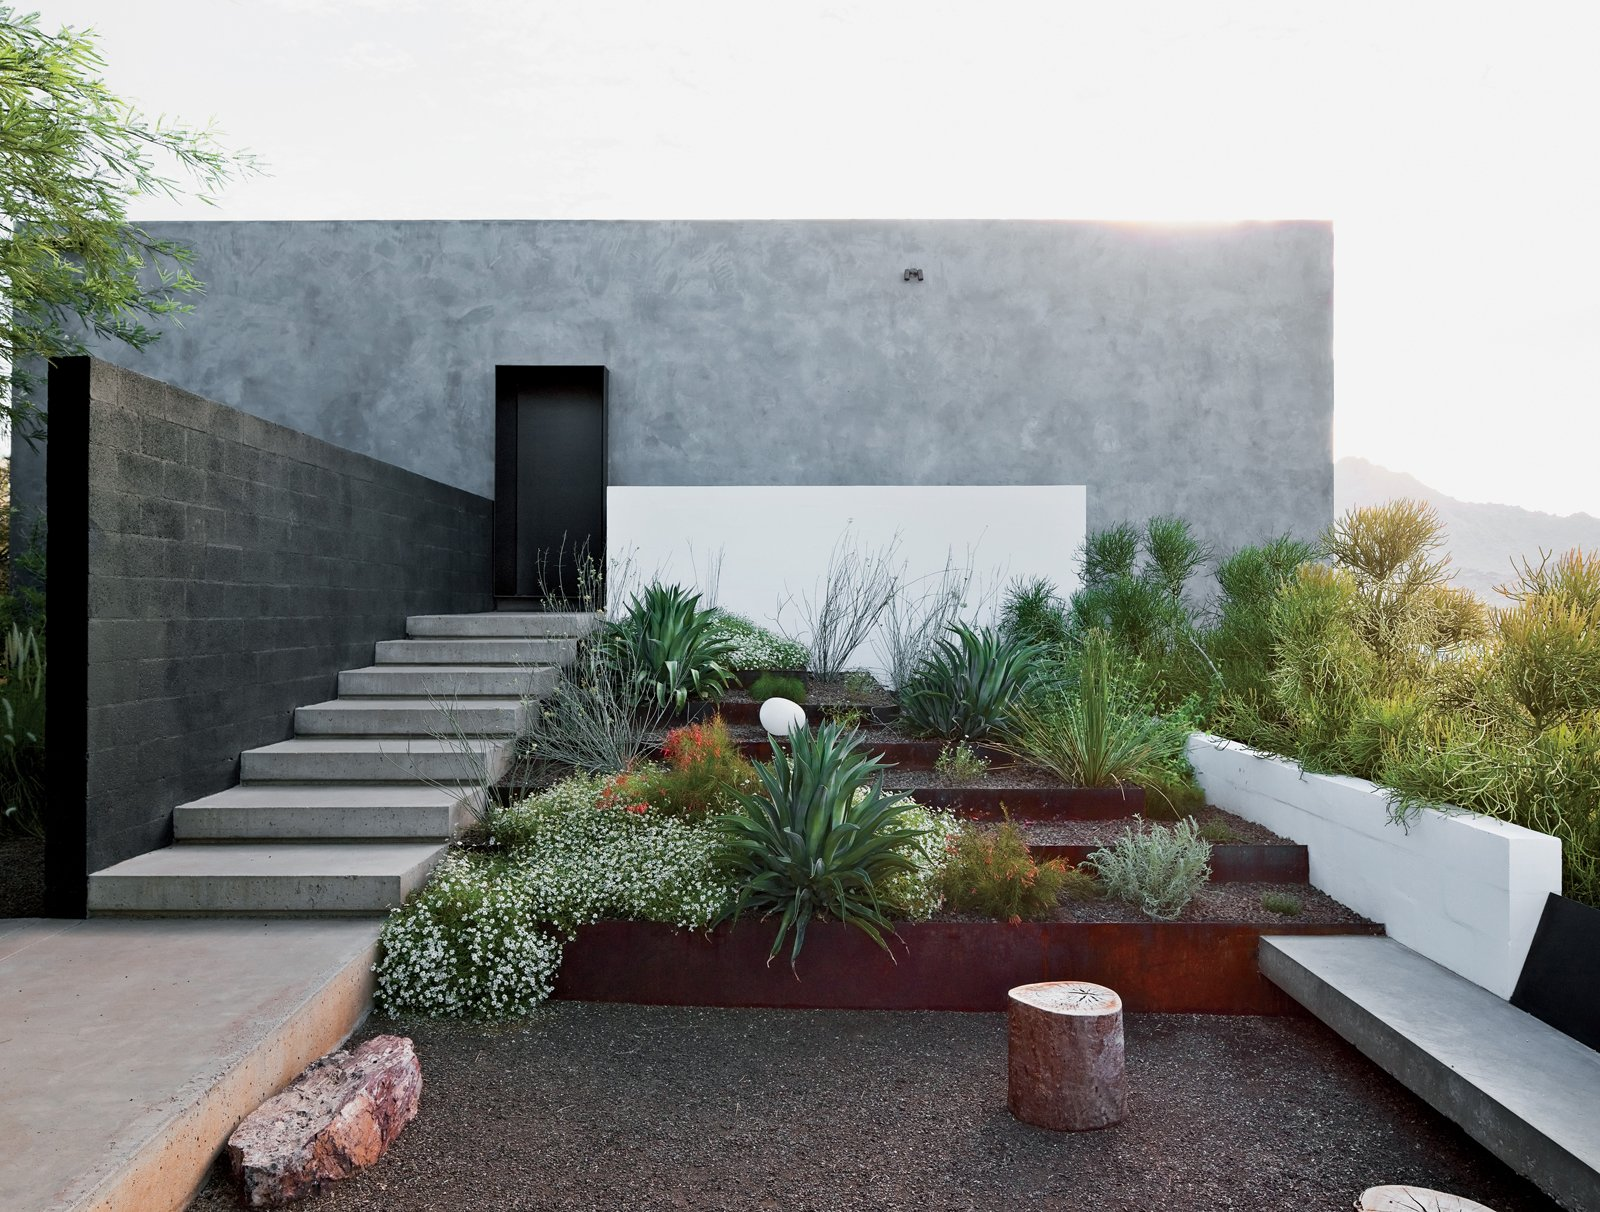 Outdoor, Hardscapes, Desert, Raised Planters, and Small Patio, Porch, Deck Burnette sought to maintain the property's natural vegetation and rocky ground surface.  Elgin House